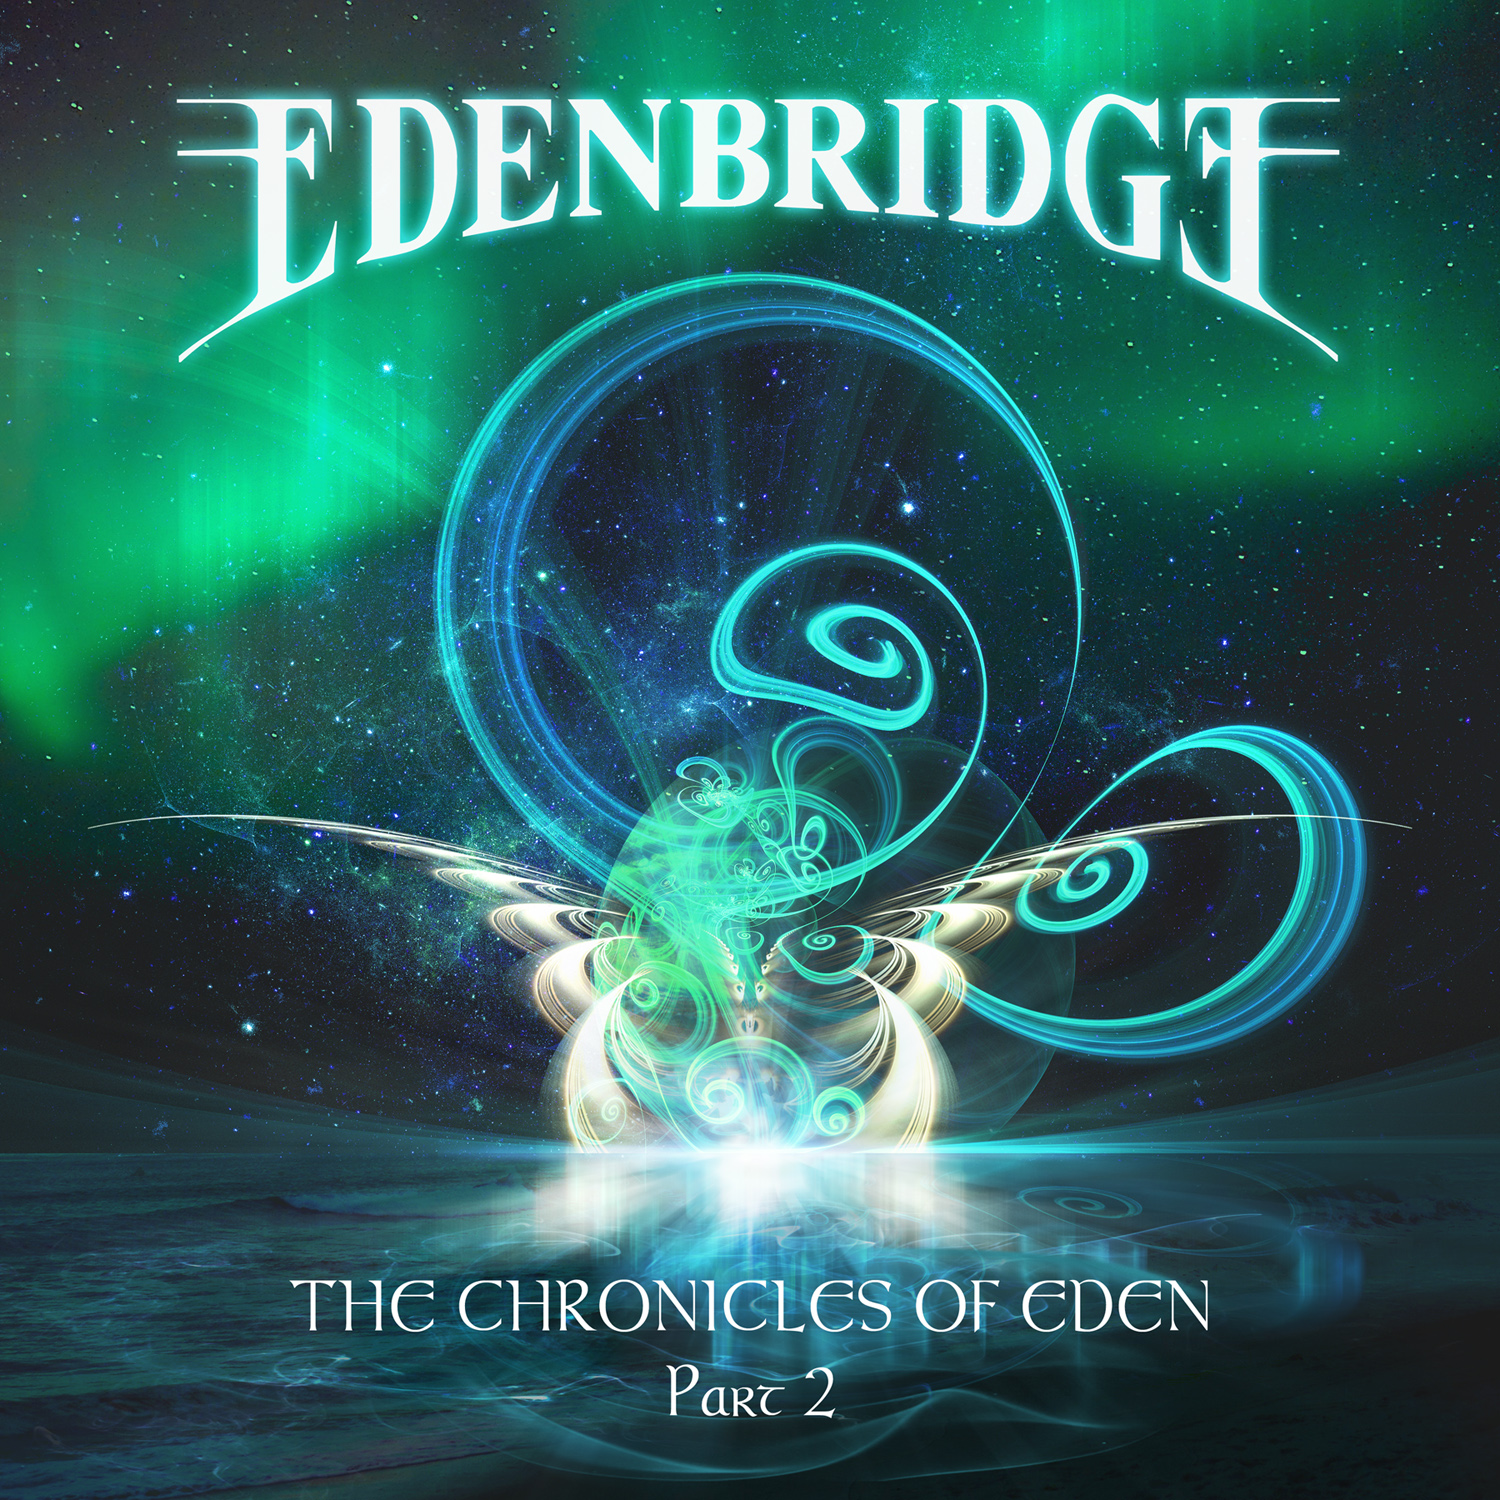 edenbridge-the-chronicles-of-eden-part-2-20-jaehrigen-bandjubilaeum